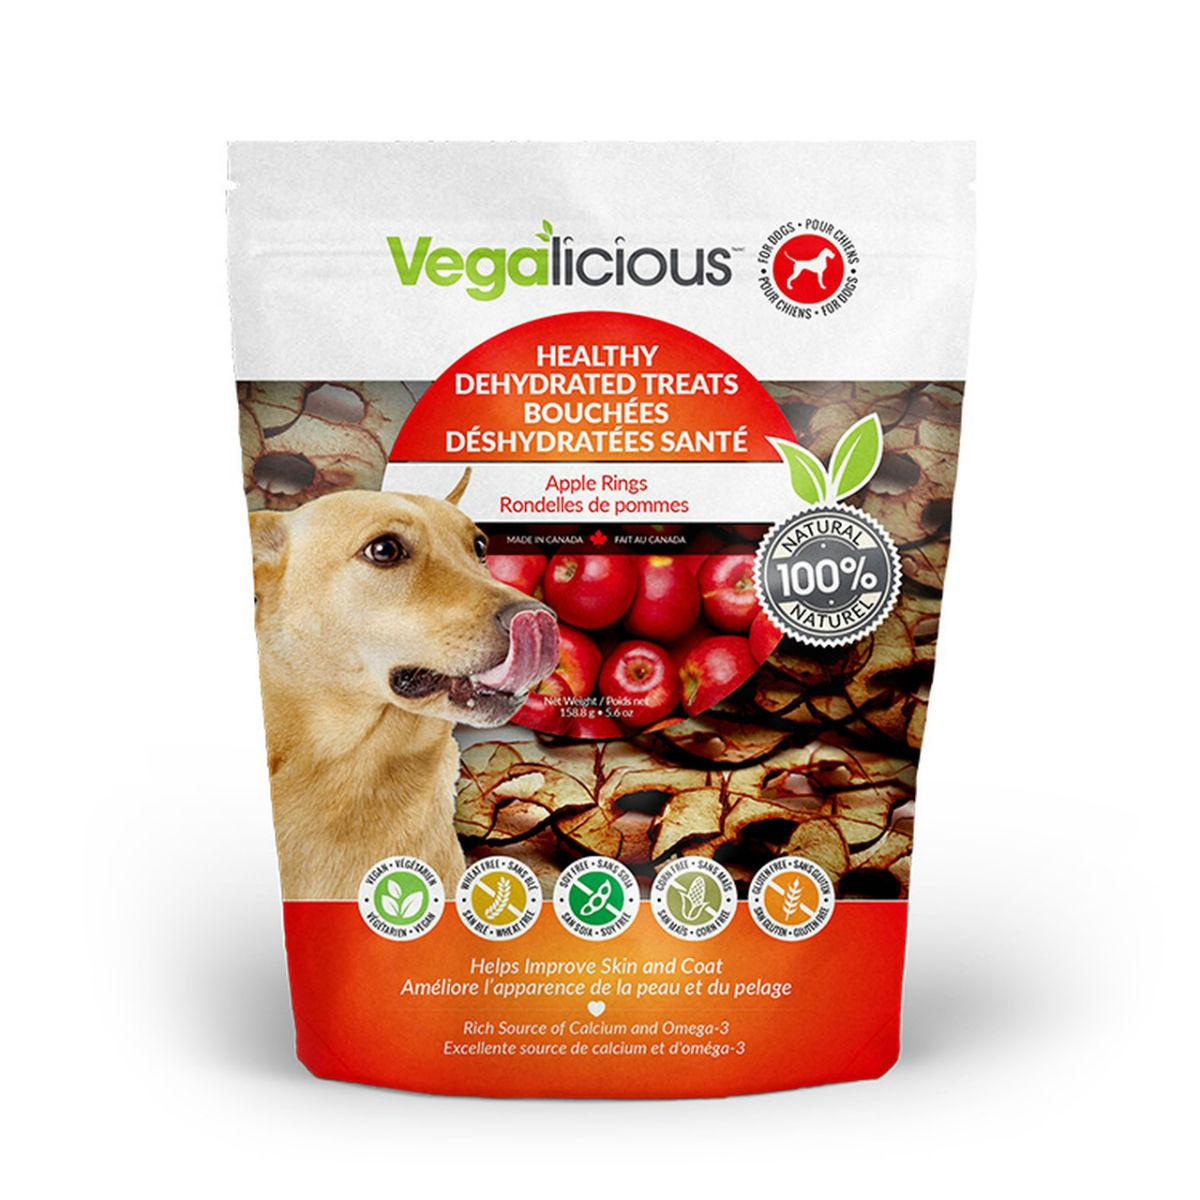 Vegalicious Healthy Dehydrated Dog Treats - Apple Rings